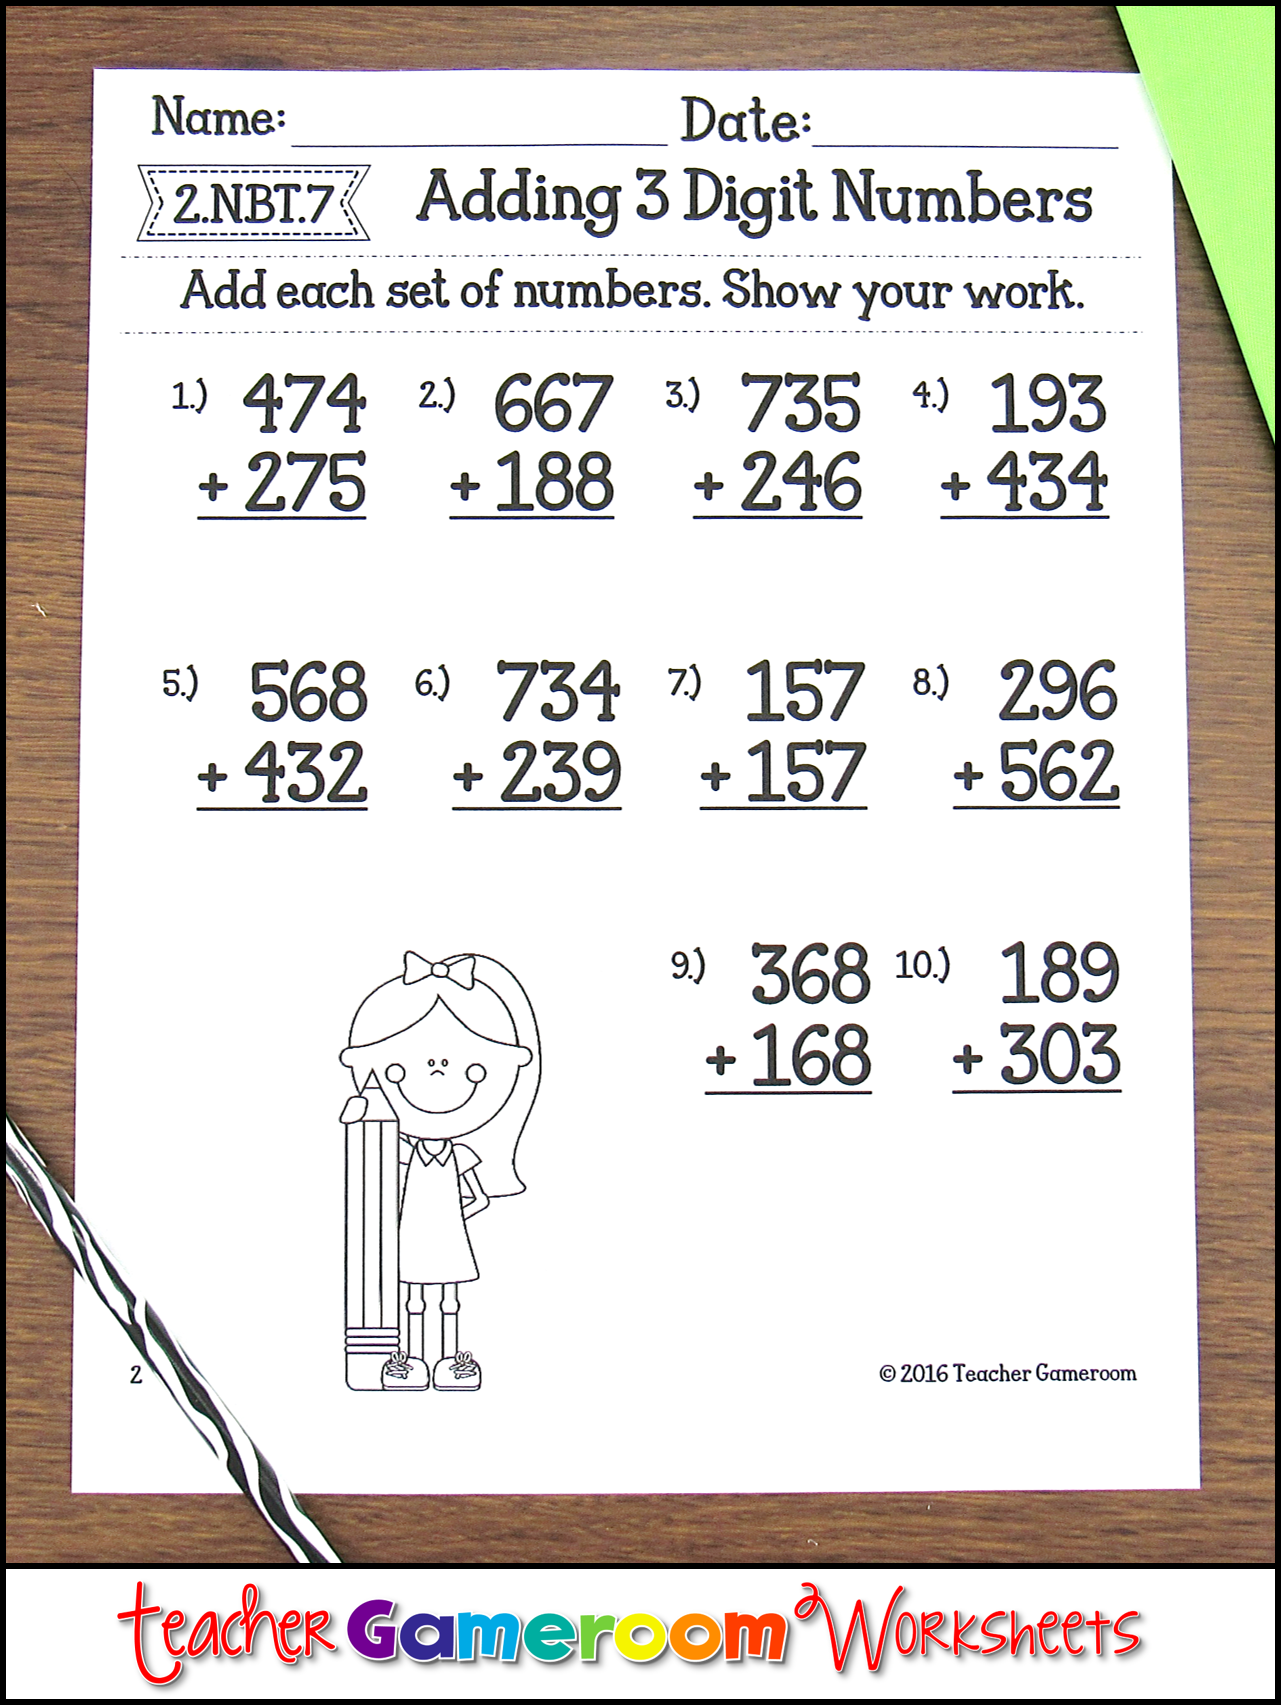 Adding 3 Digit Numbers Worksheets | Number worksheets ...